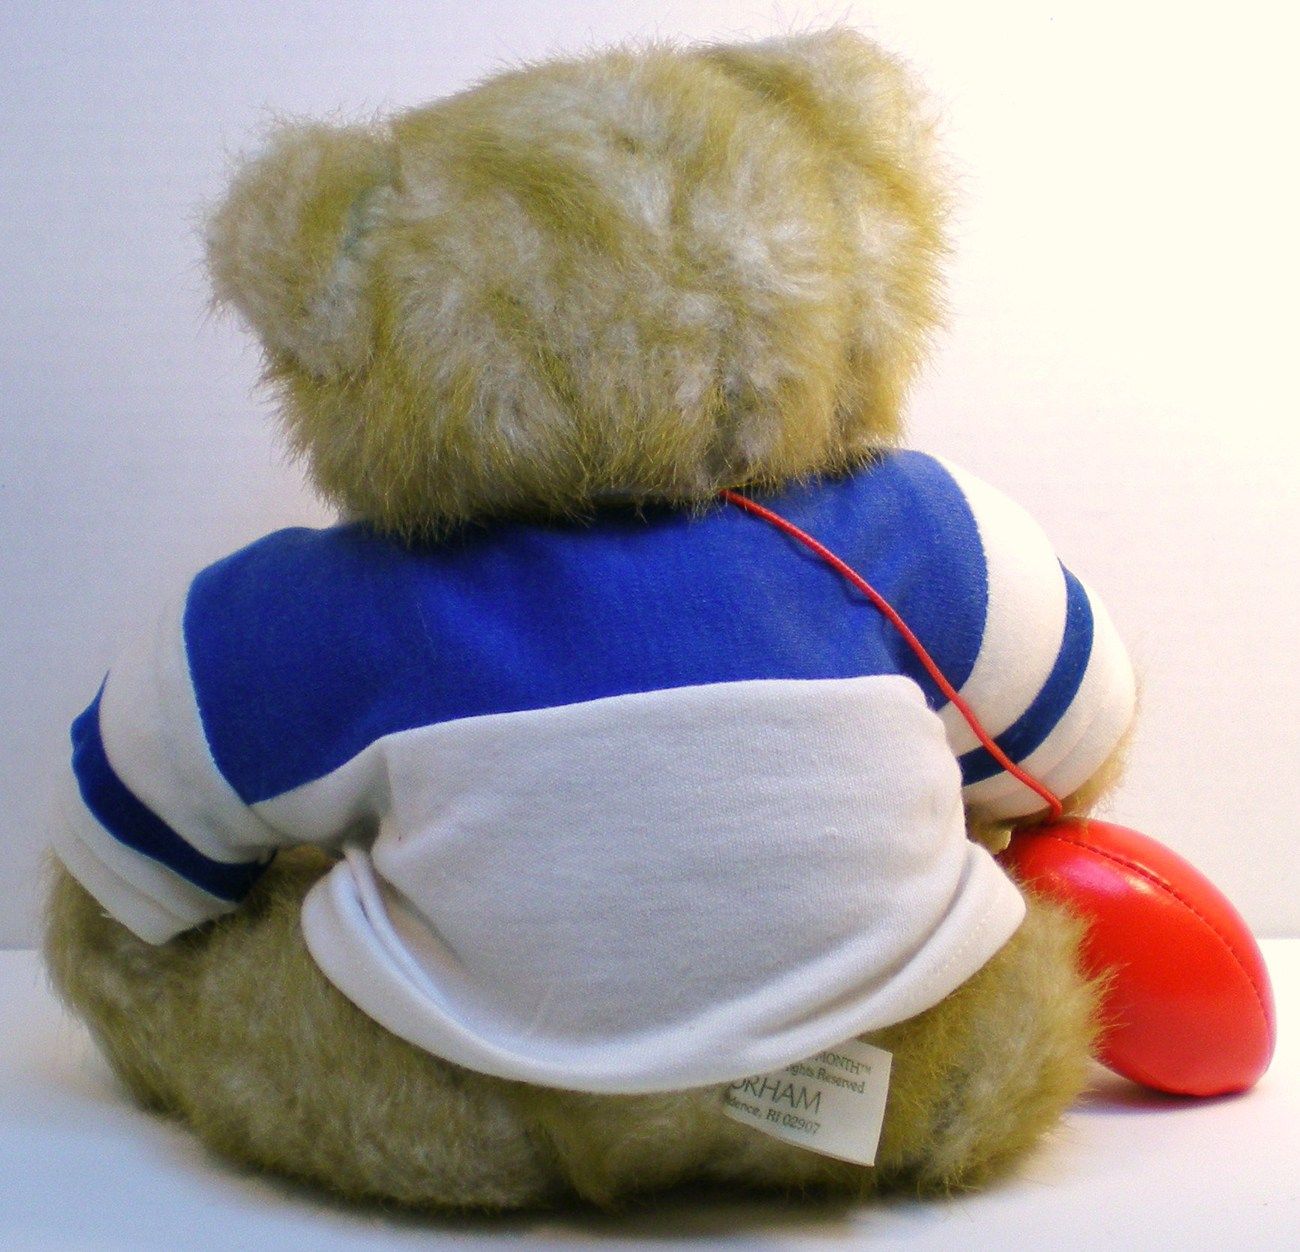 Image 2 of Gorham Teddy Bear of the Month Olympus Octobear 1984 for October